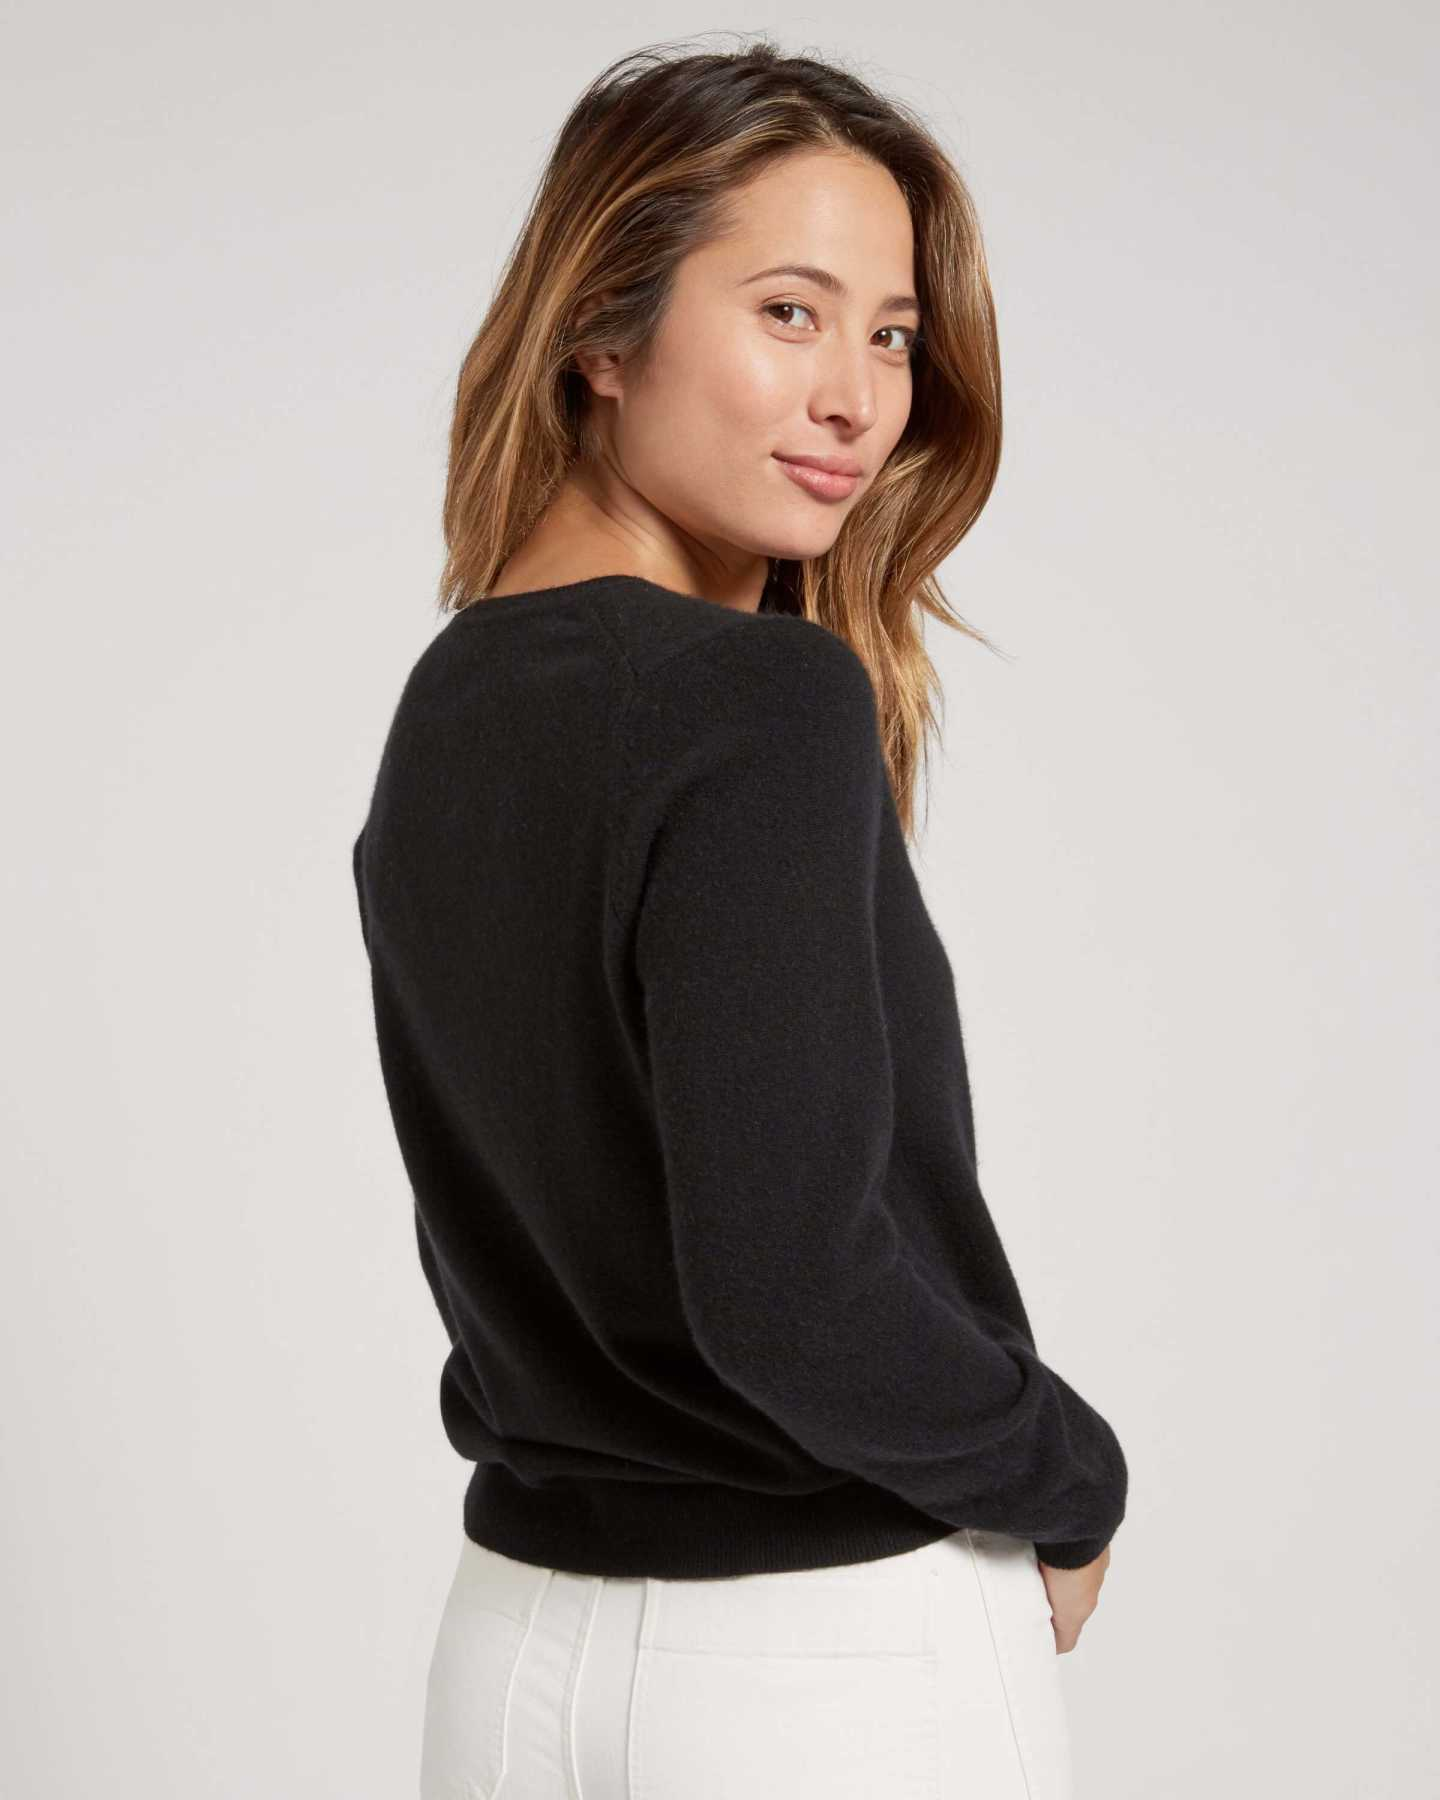 black cashmere v-neck sweater for women looking back